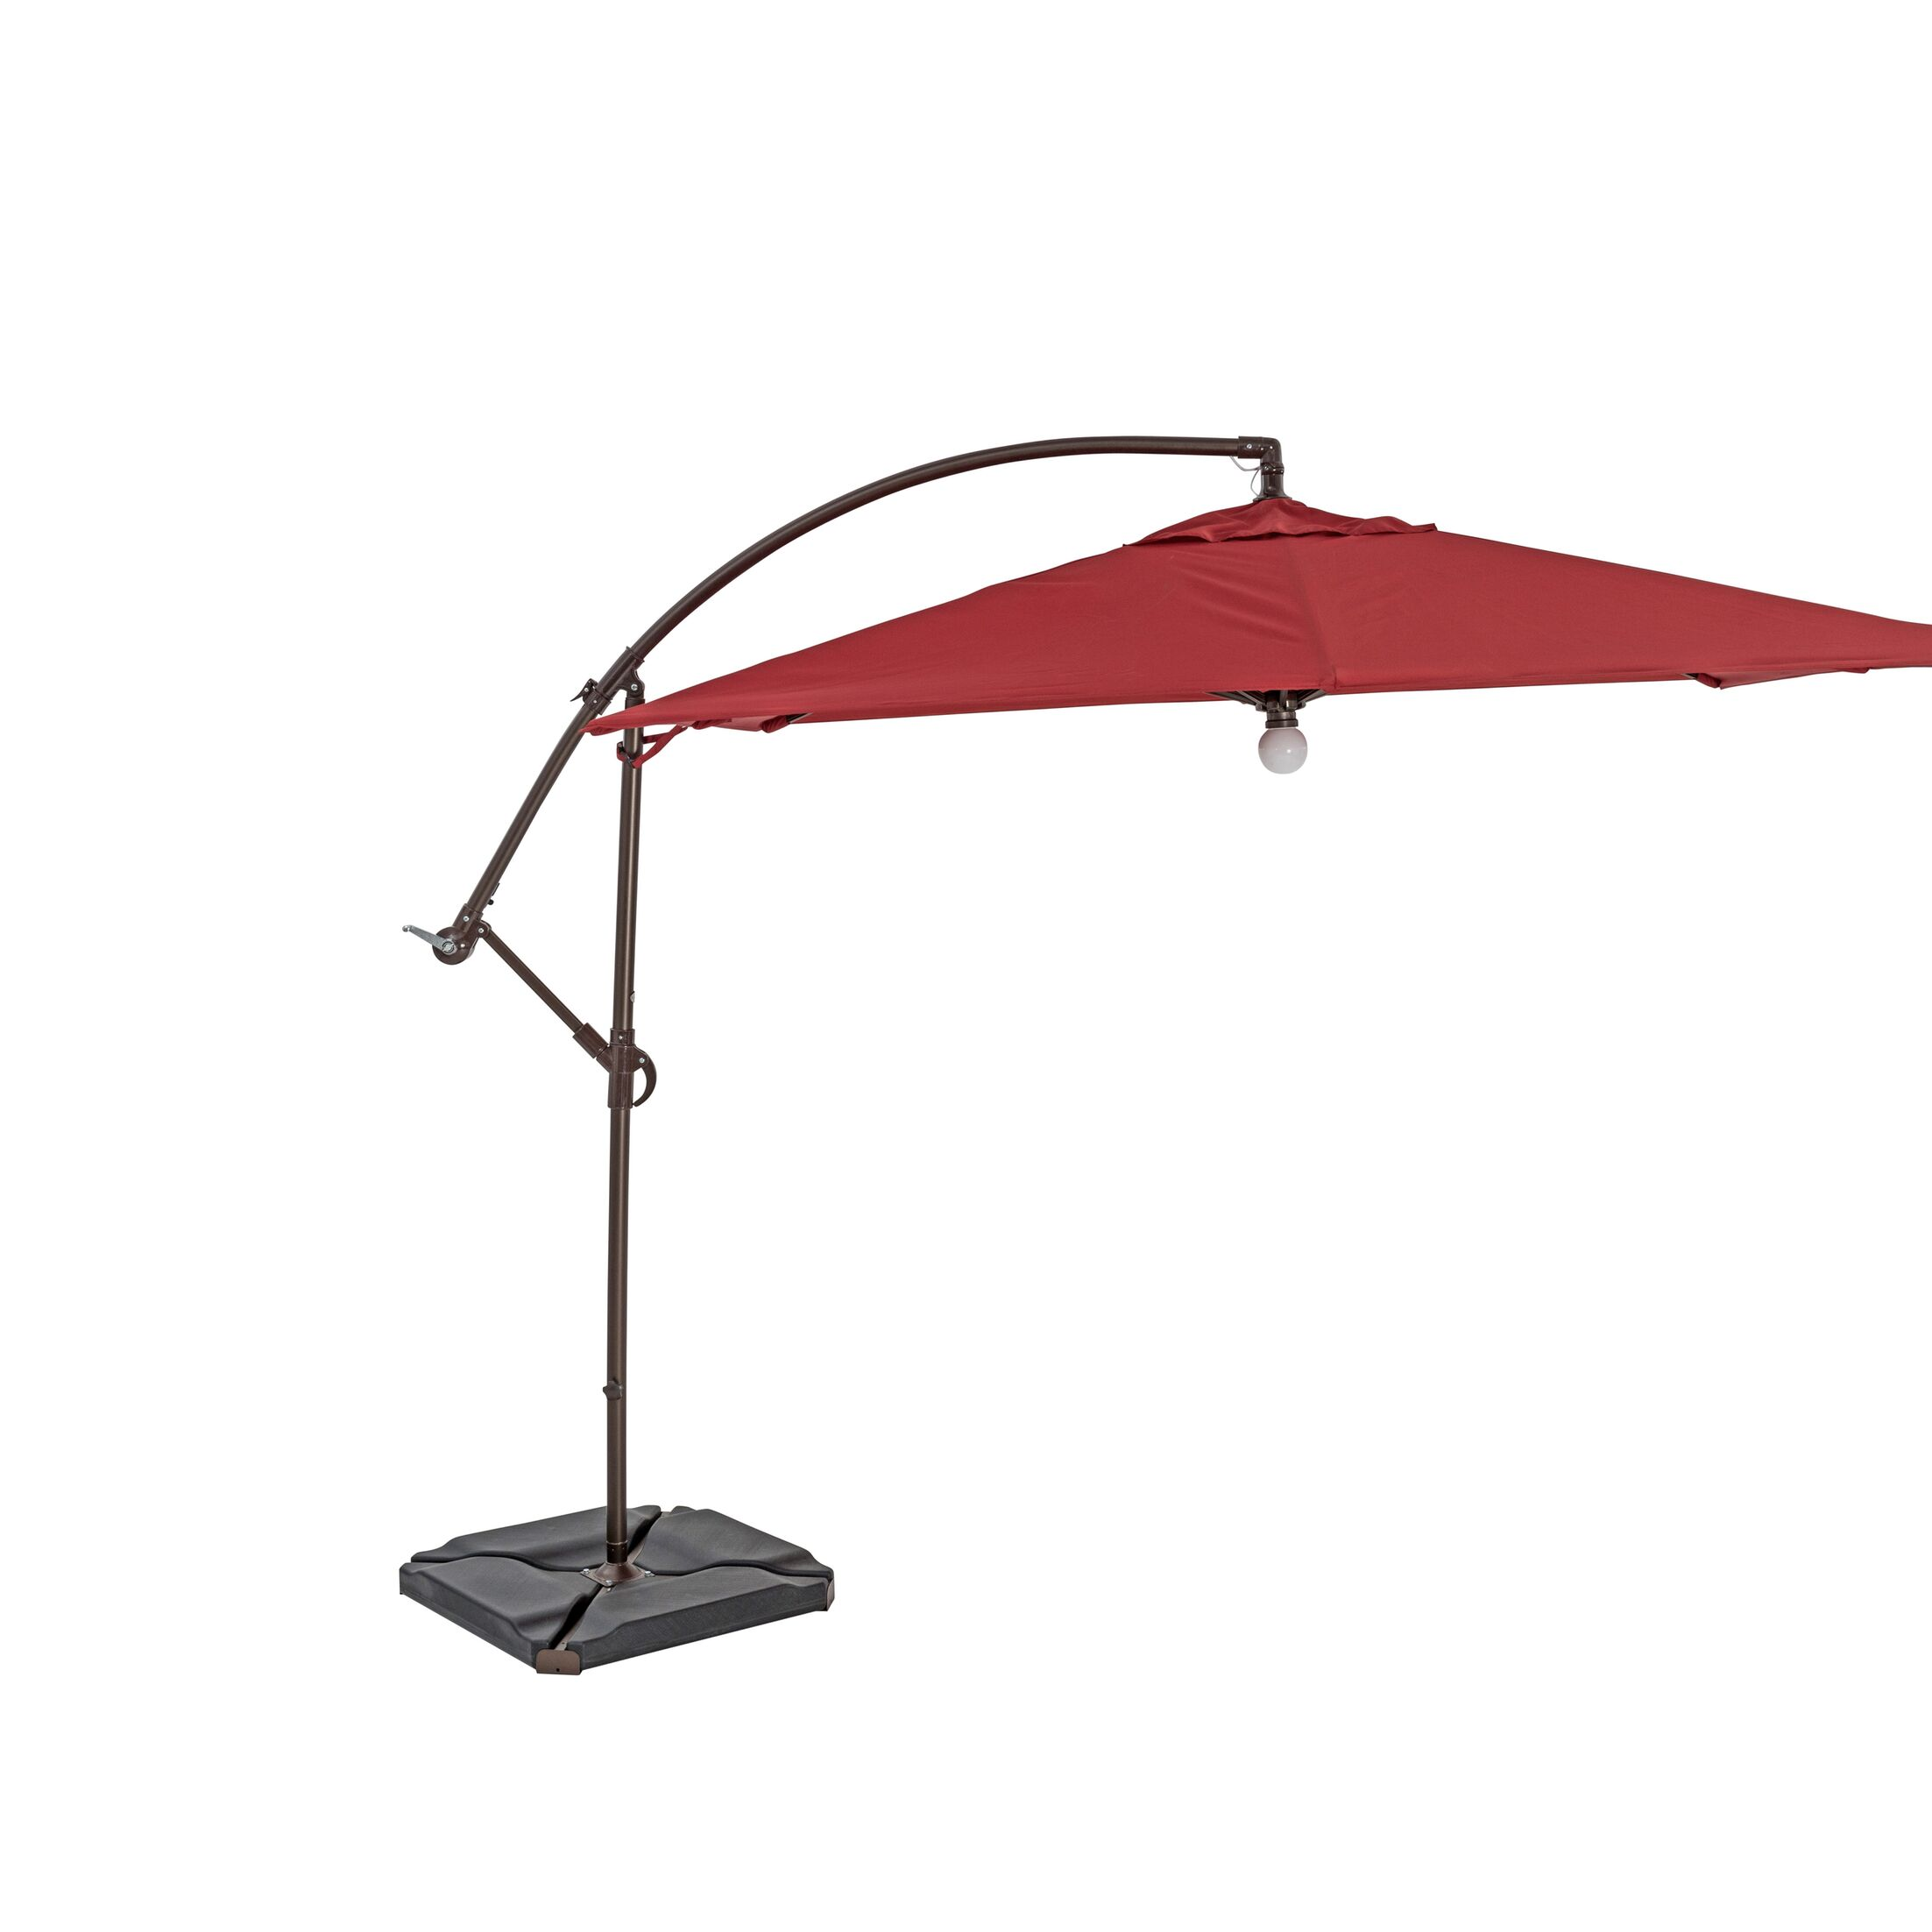 10' Square Cantilever Umbrella Color: Henna